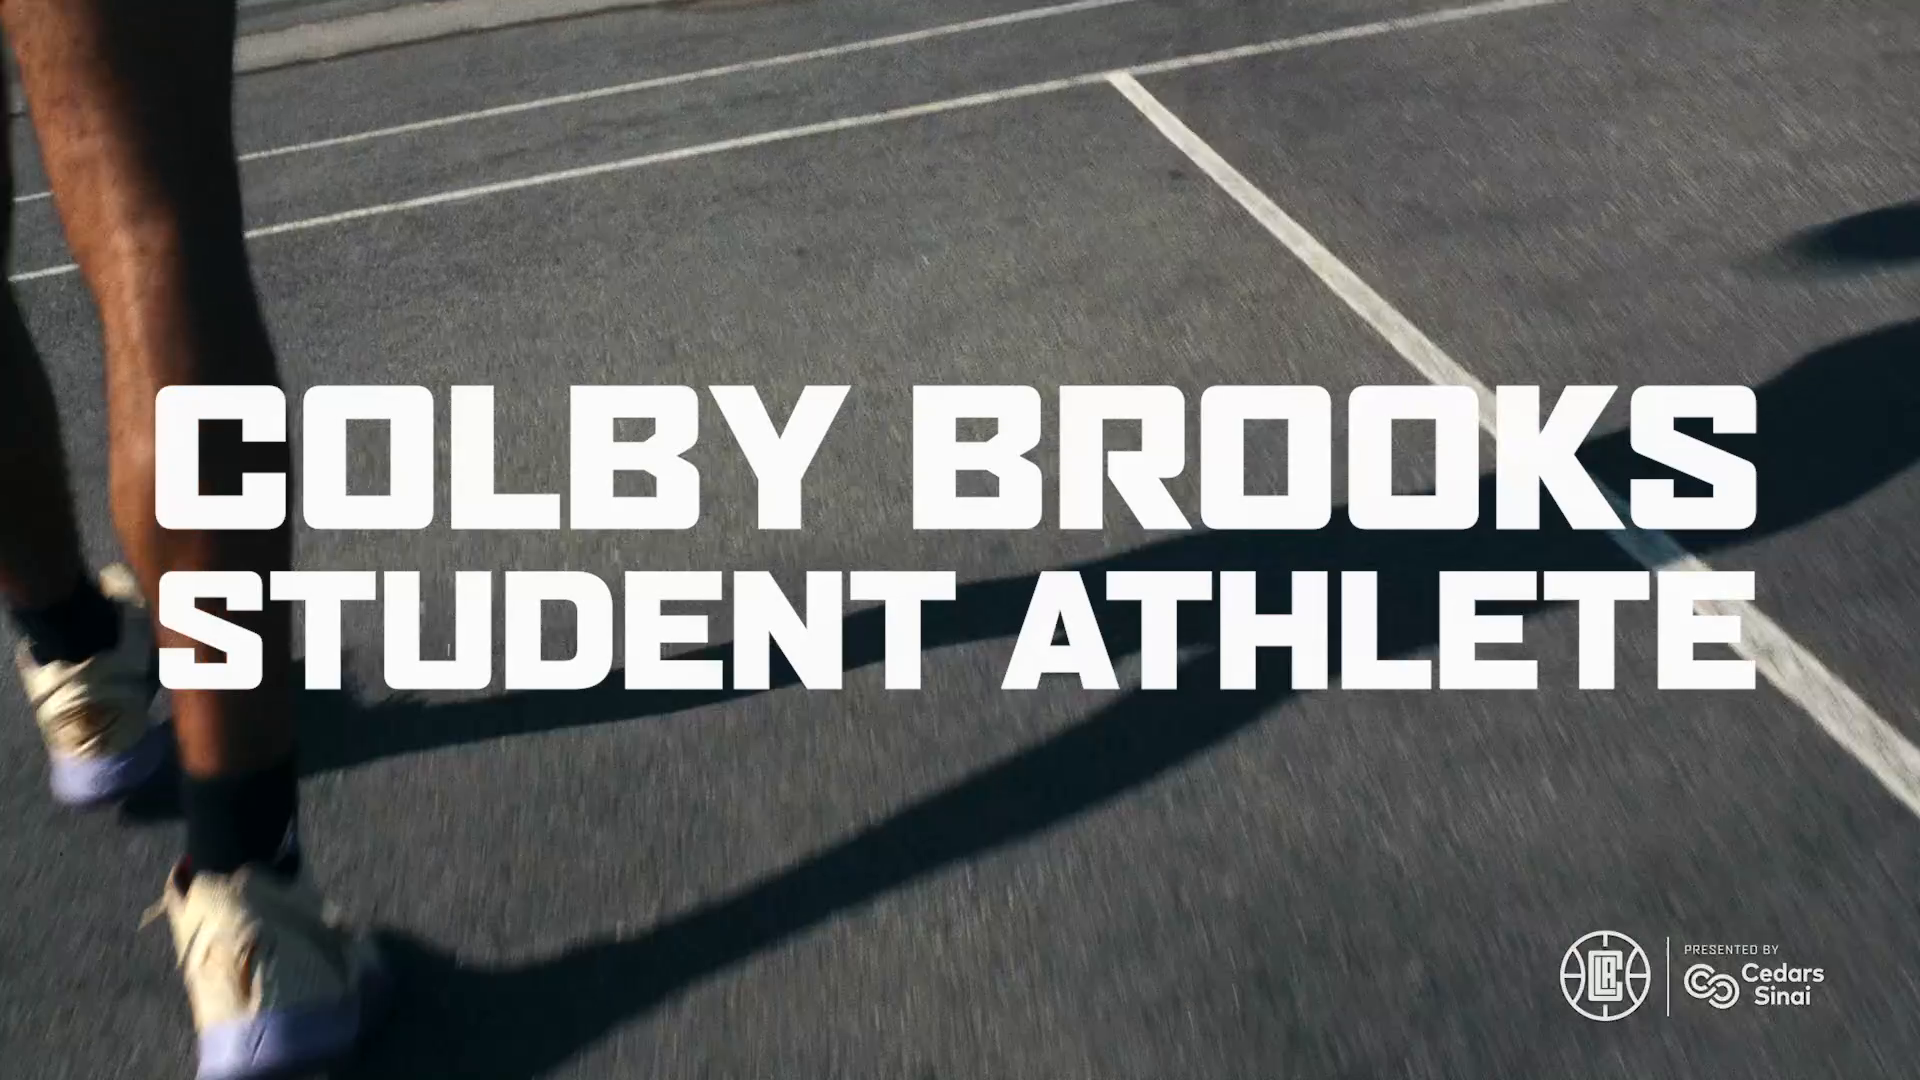 Colby Brooks, Student Athlete